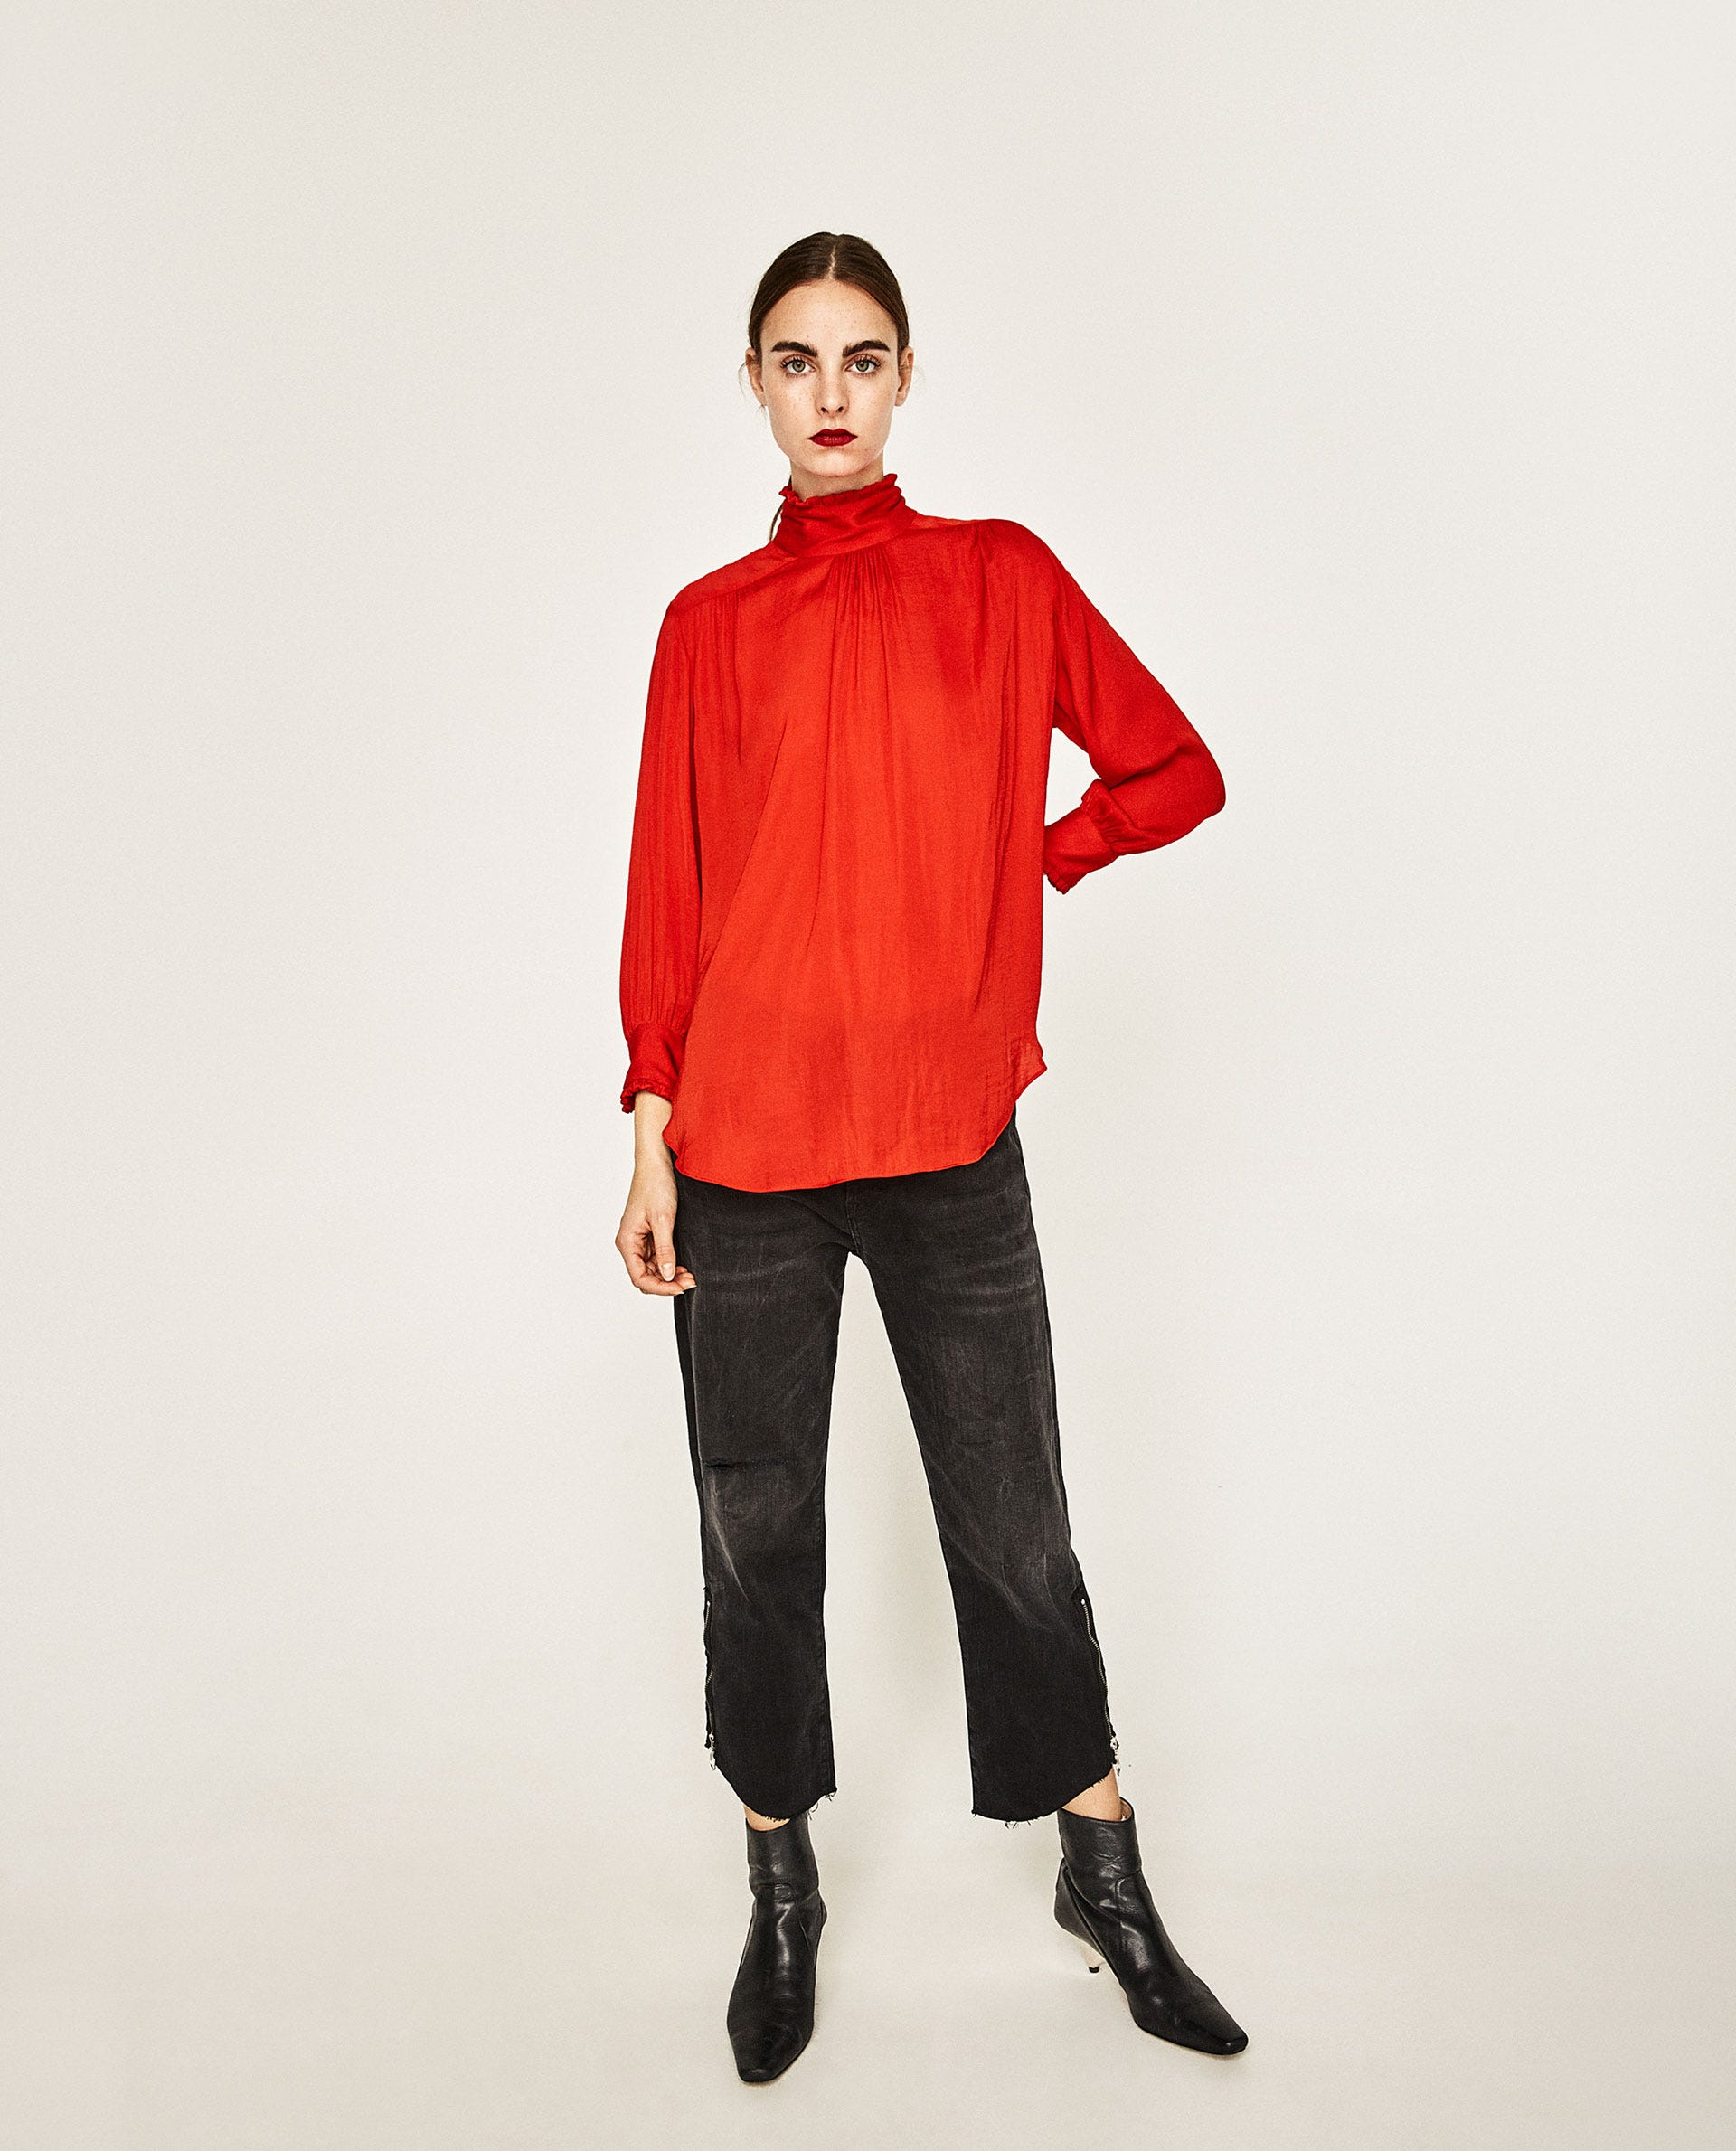 40f2ab95c1 Zara Winter New Arrivals - What To Buy Now